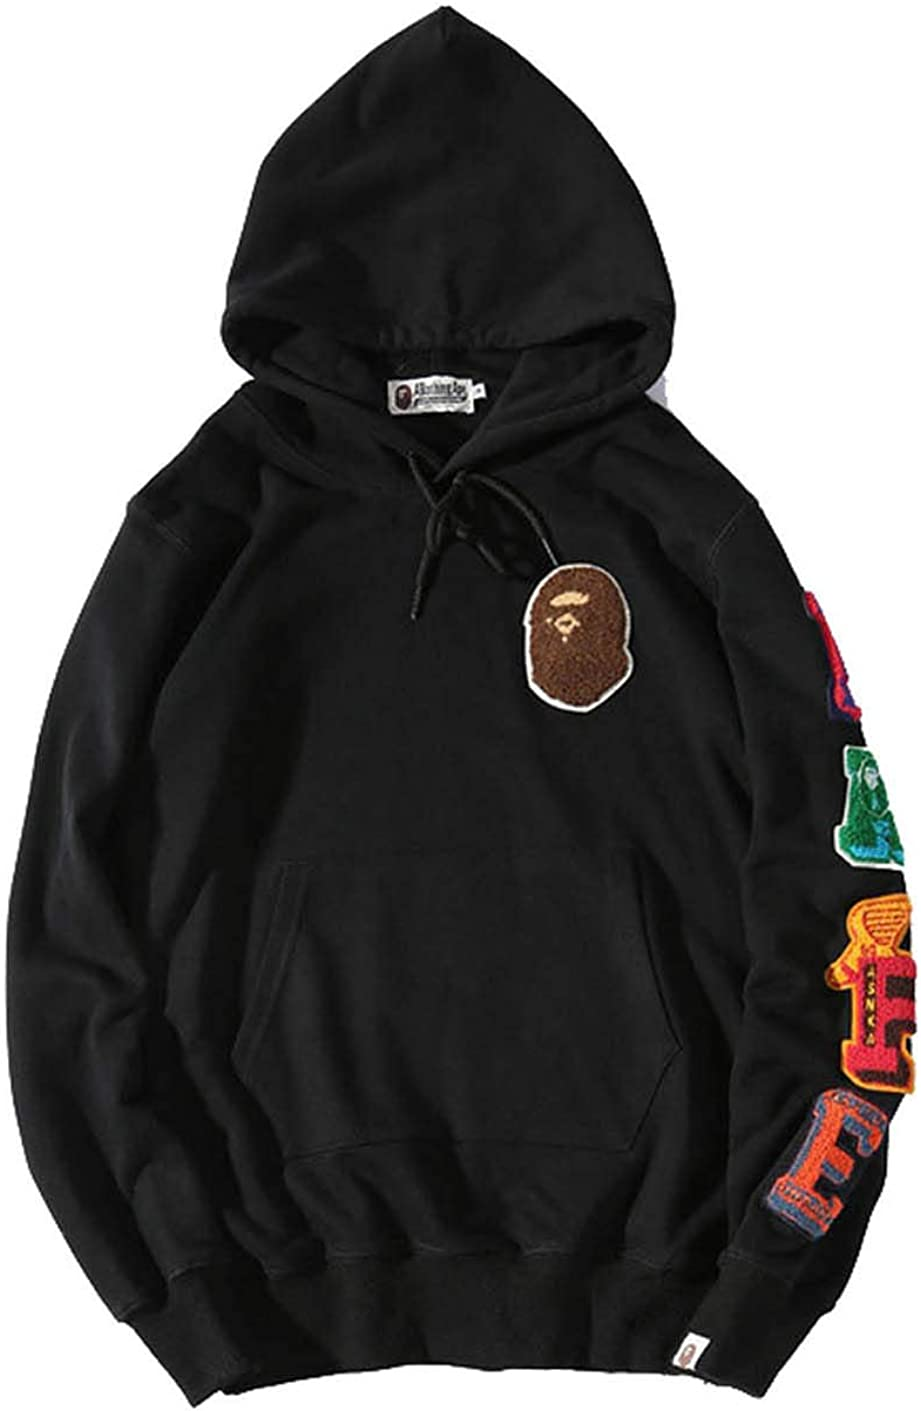 Mens Ape Bape Hoodies Sweatshirt Fashion Casual Coat Outdoor Hip-Hop Funny Tops